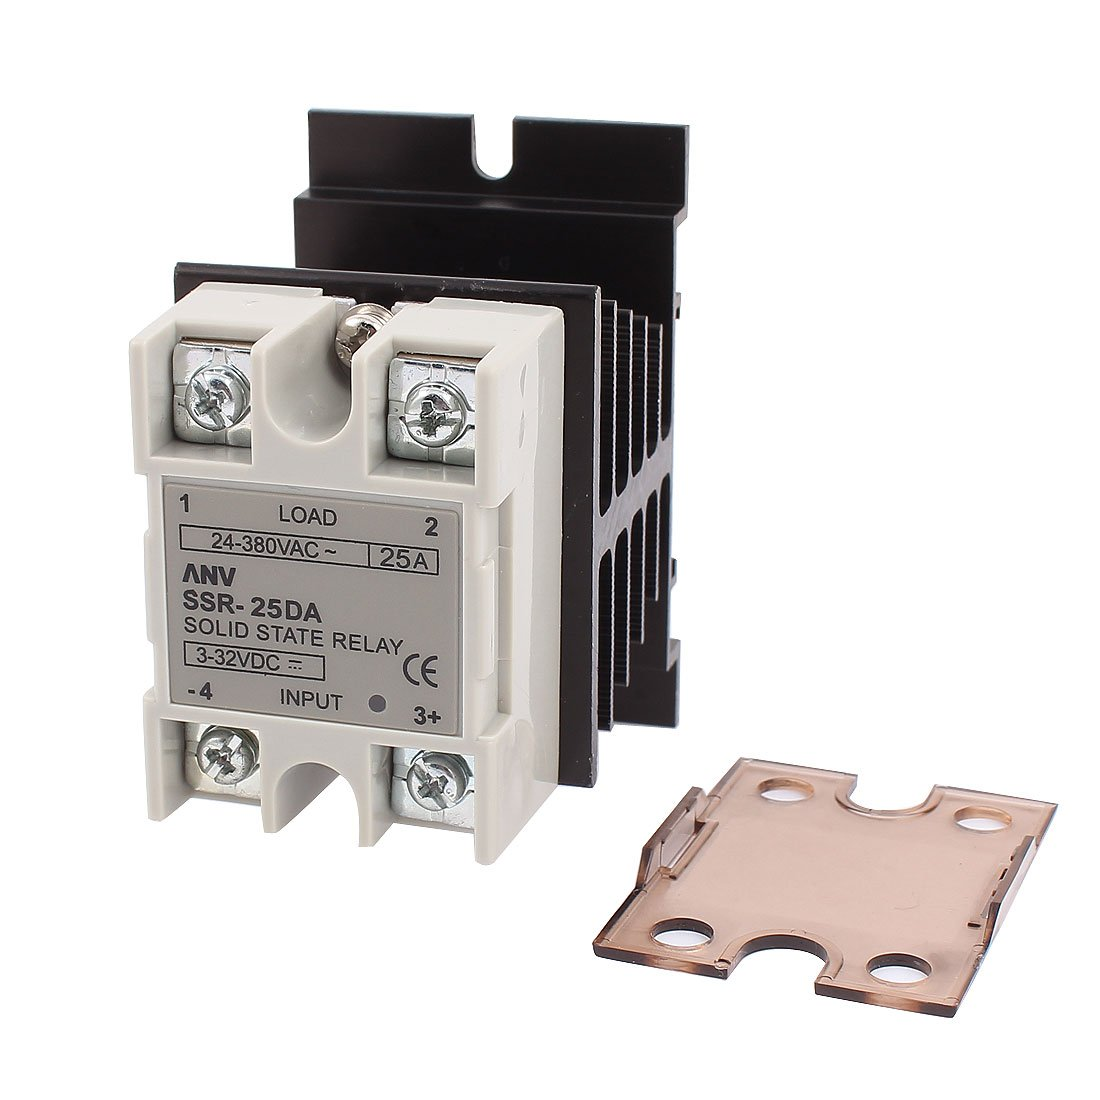 A15111100ux0289 Ssr 25da Solid State Relay Dc Ac 25a 3 32v 24 Reprap 380v Heat Sink Business Industry Science